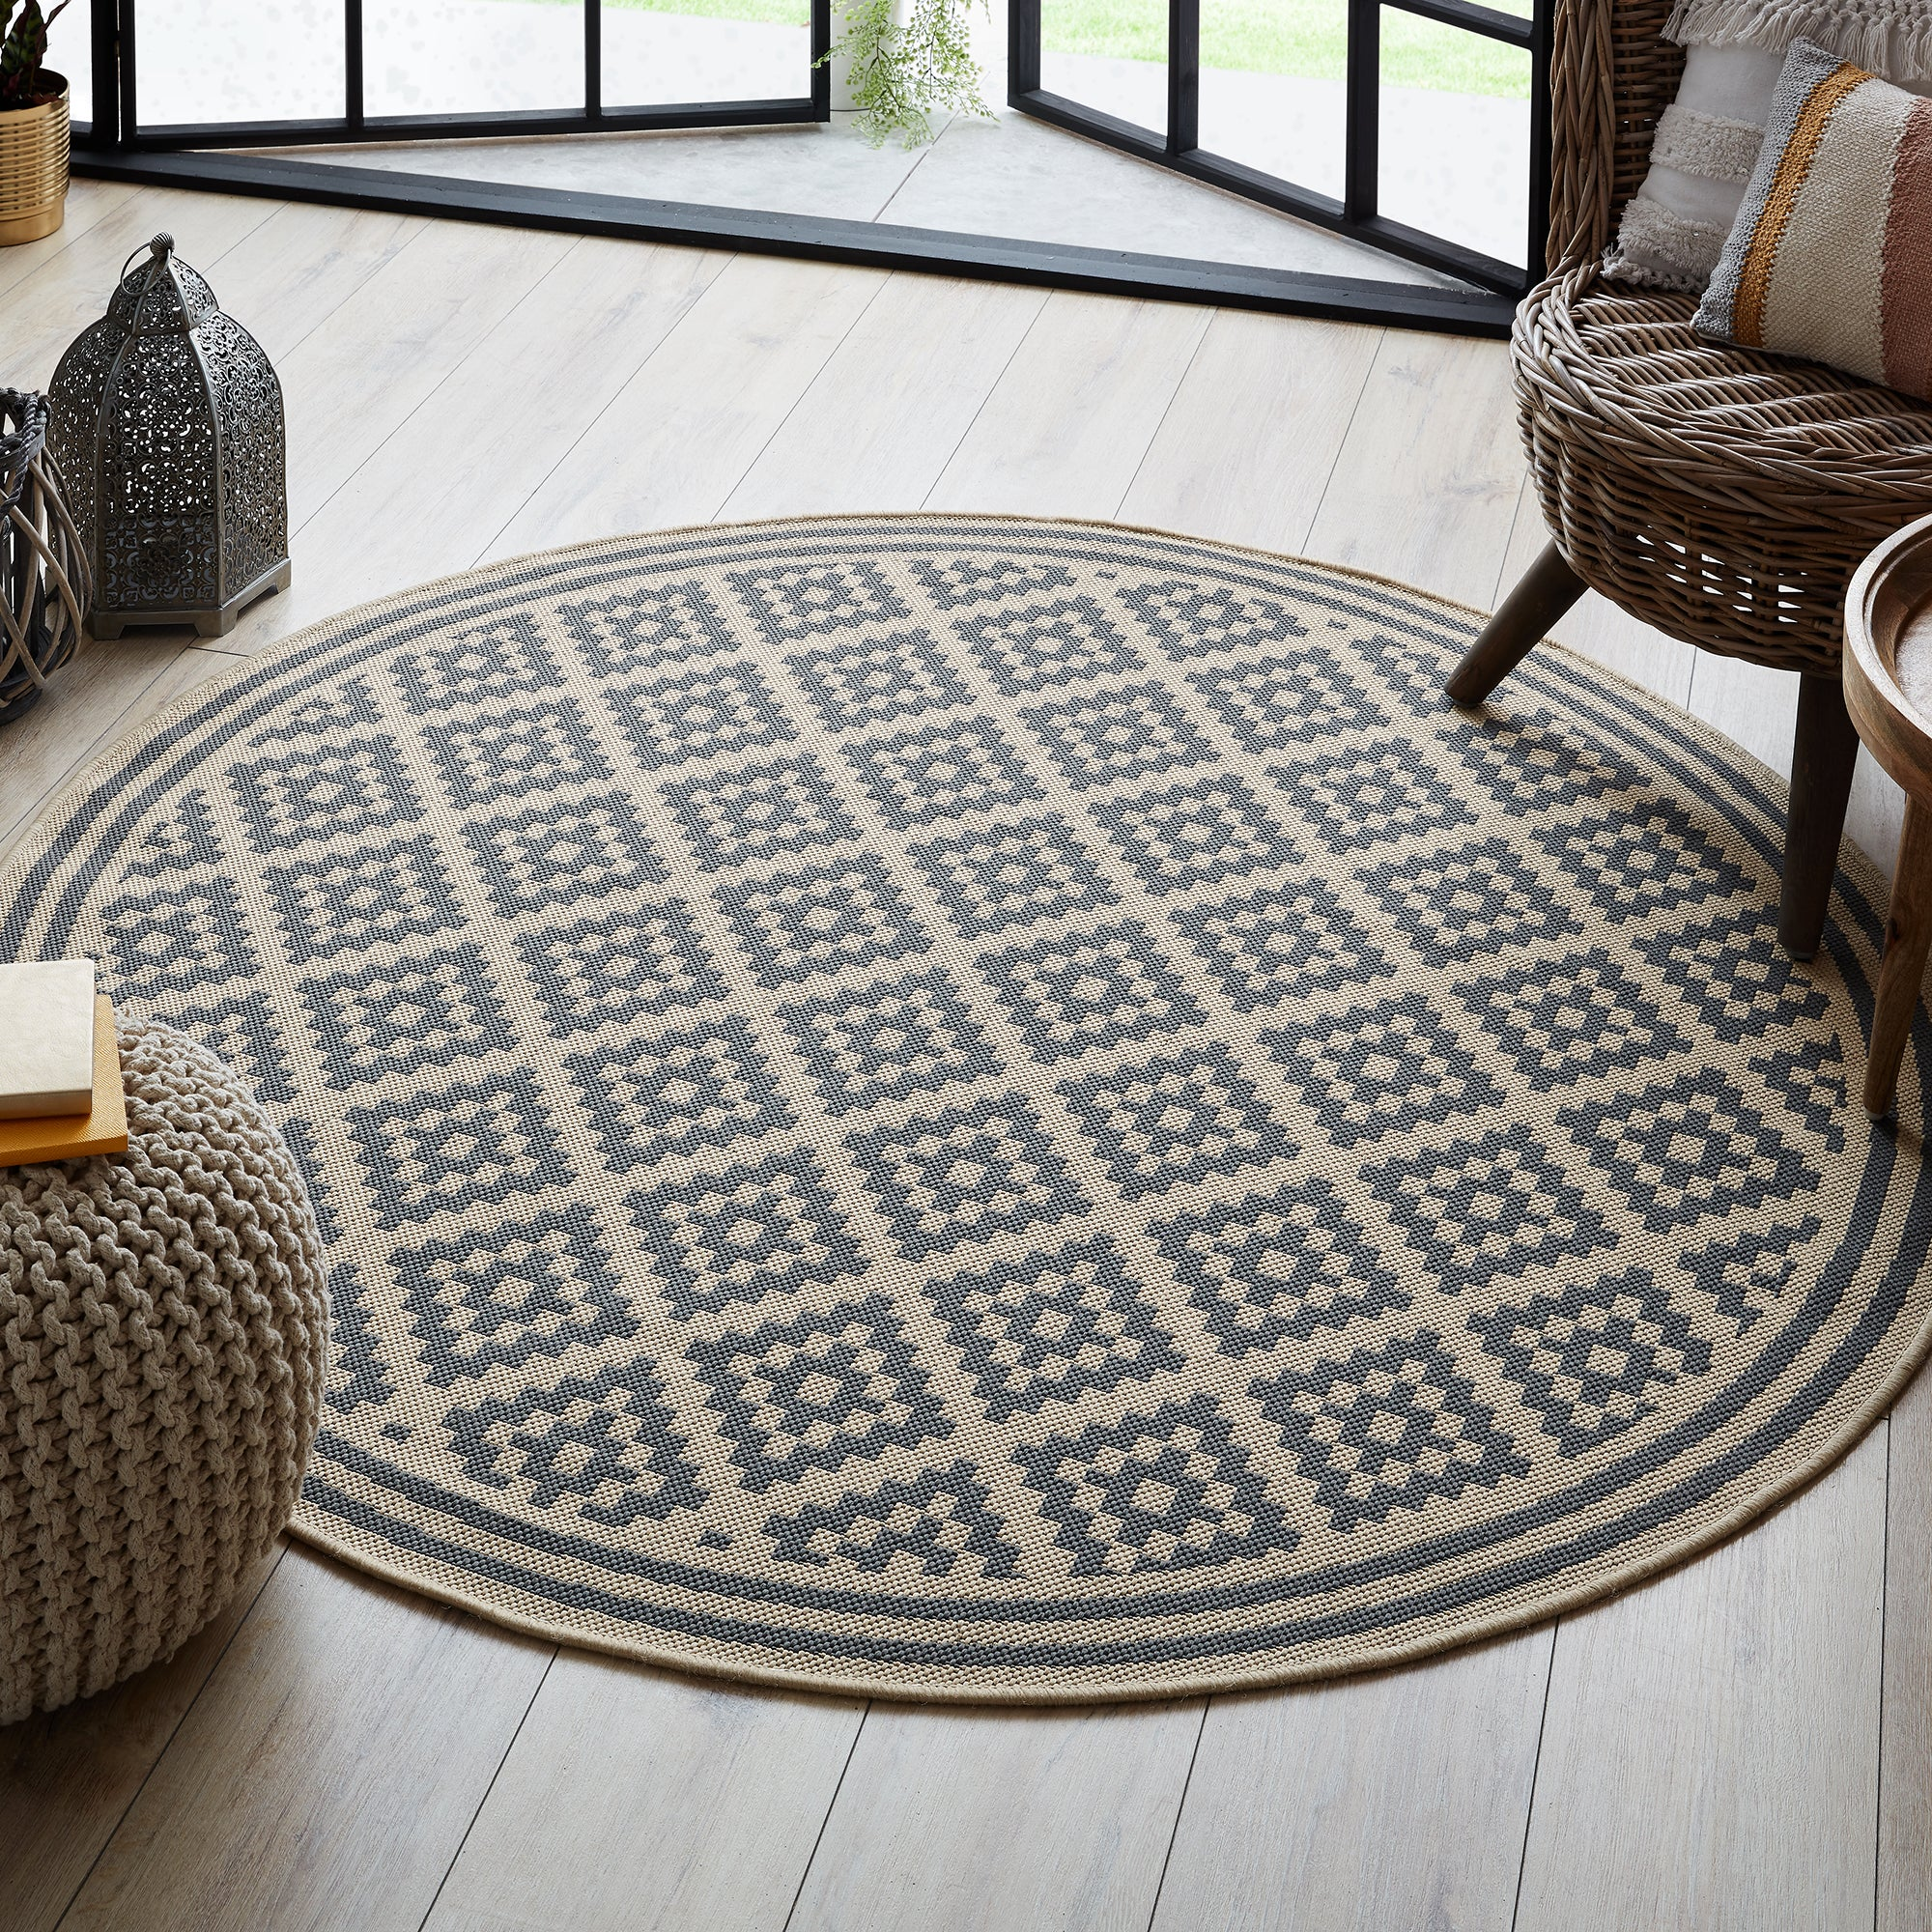 Photo of Indoor outdoor moretti circle rug beige and grey